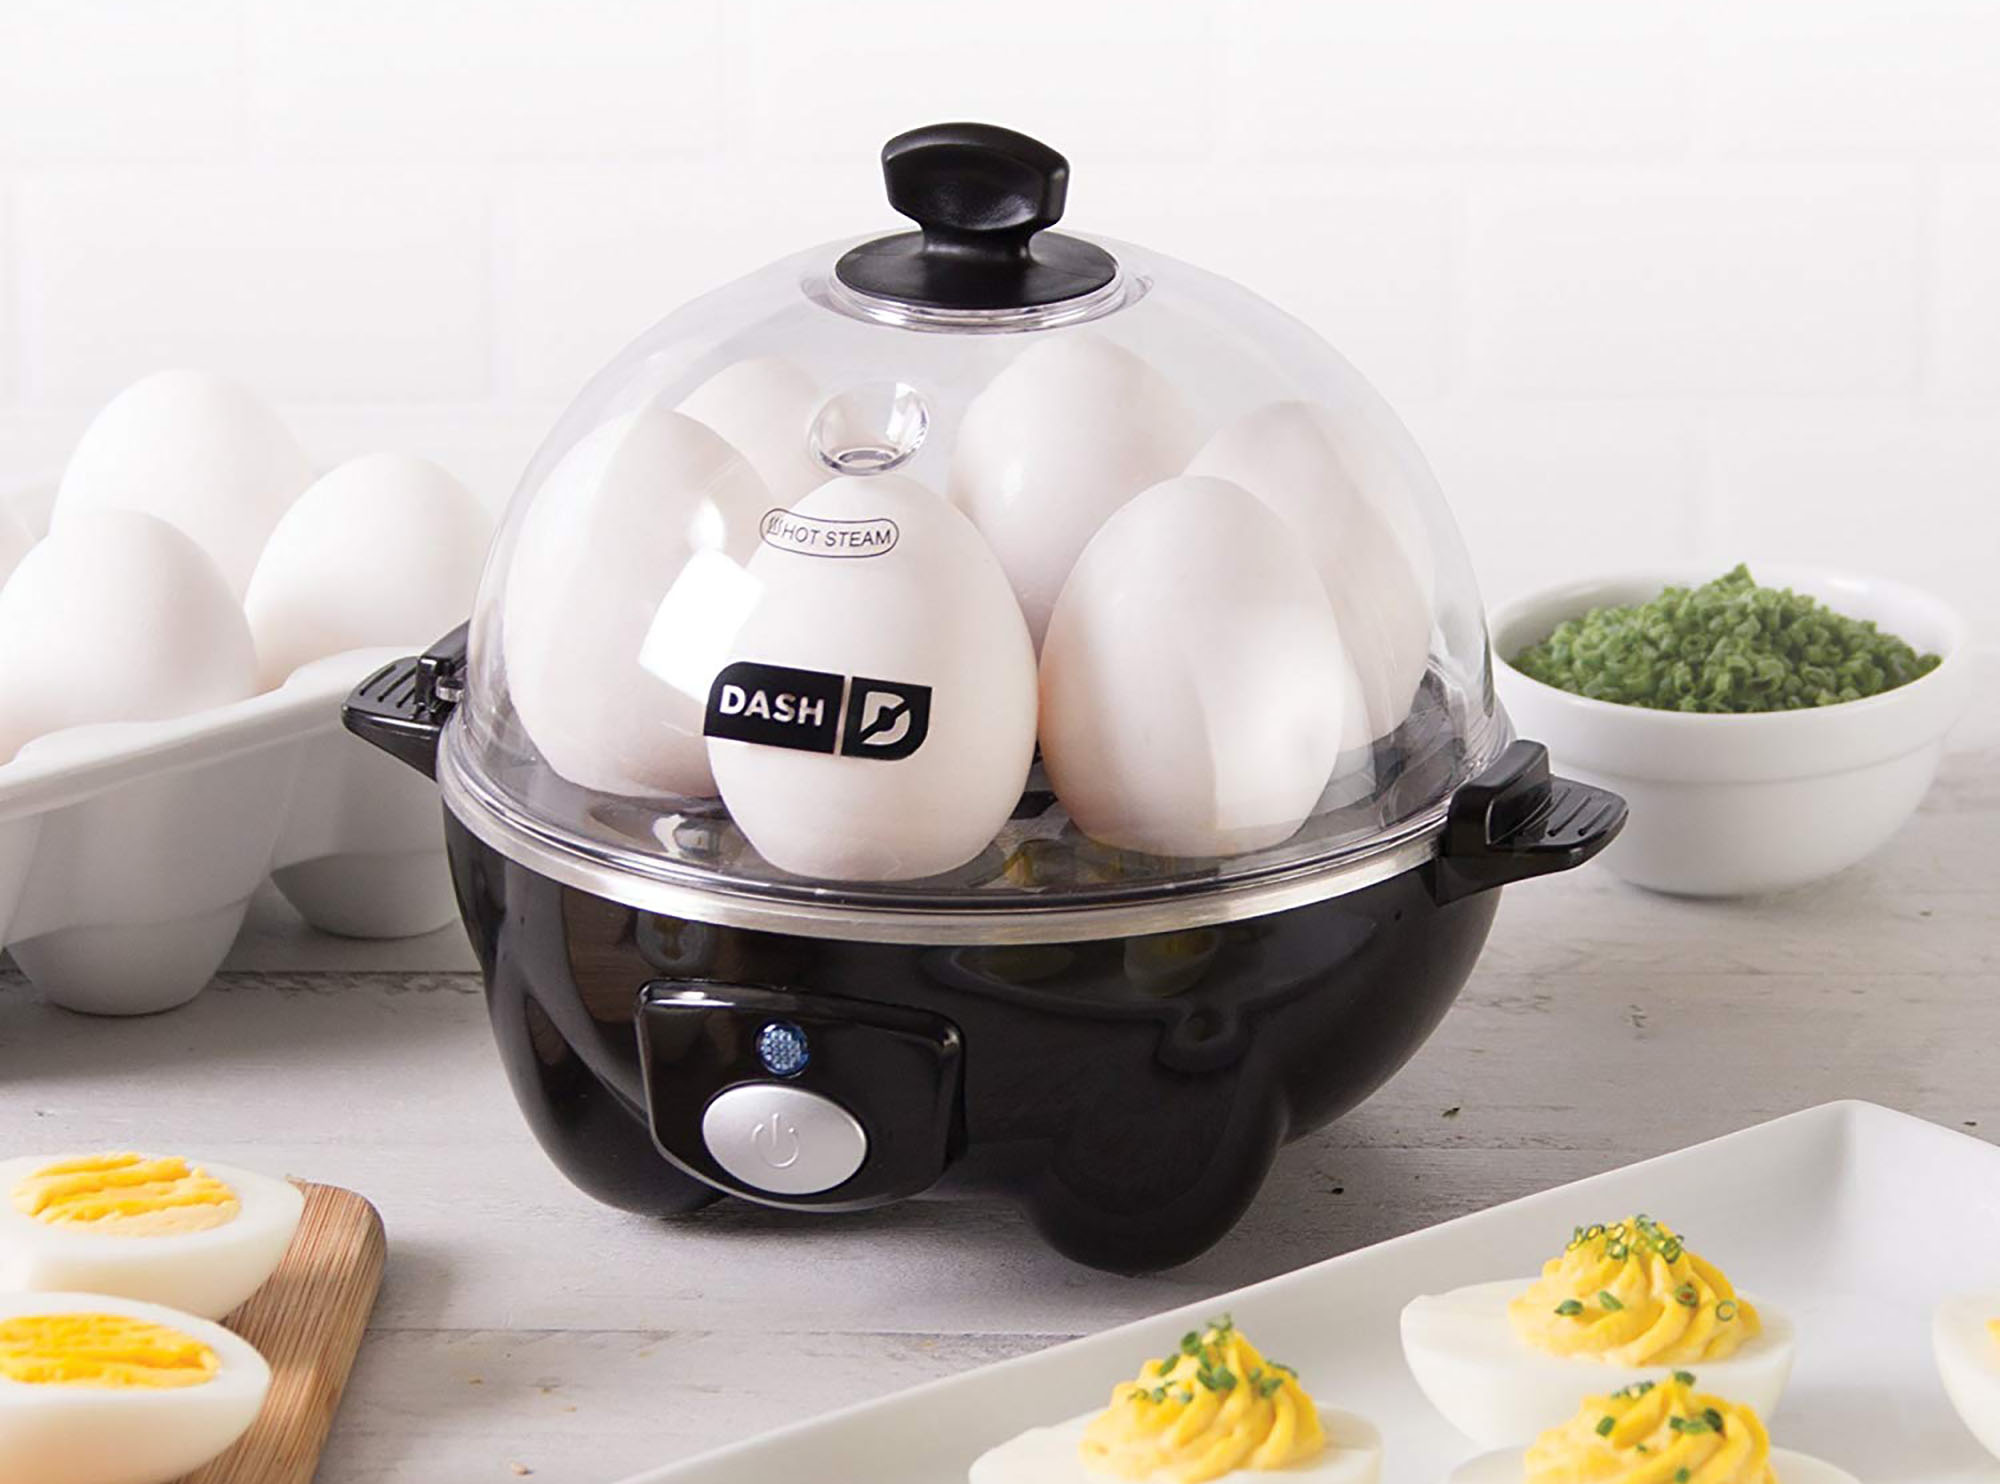 Dash Rapid Egg Cooker Amazon Prime Day